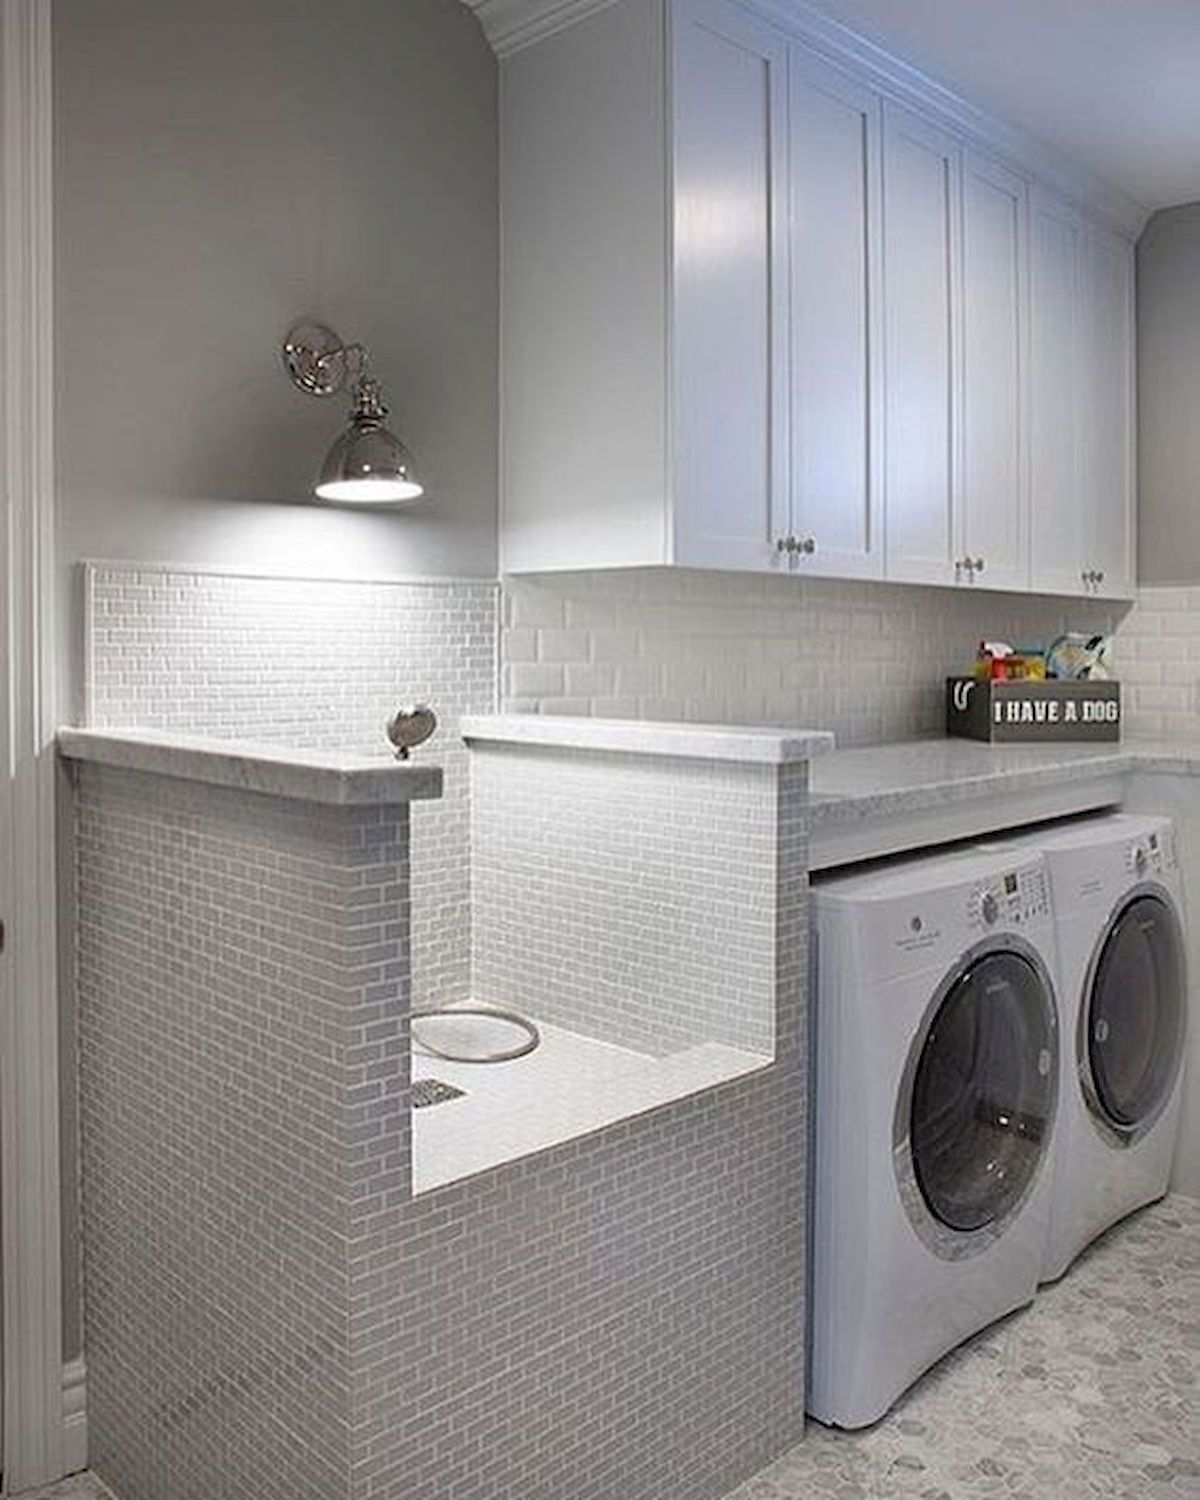 Best Laundry Room Design Ideas and Decorations images